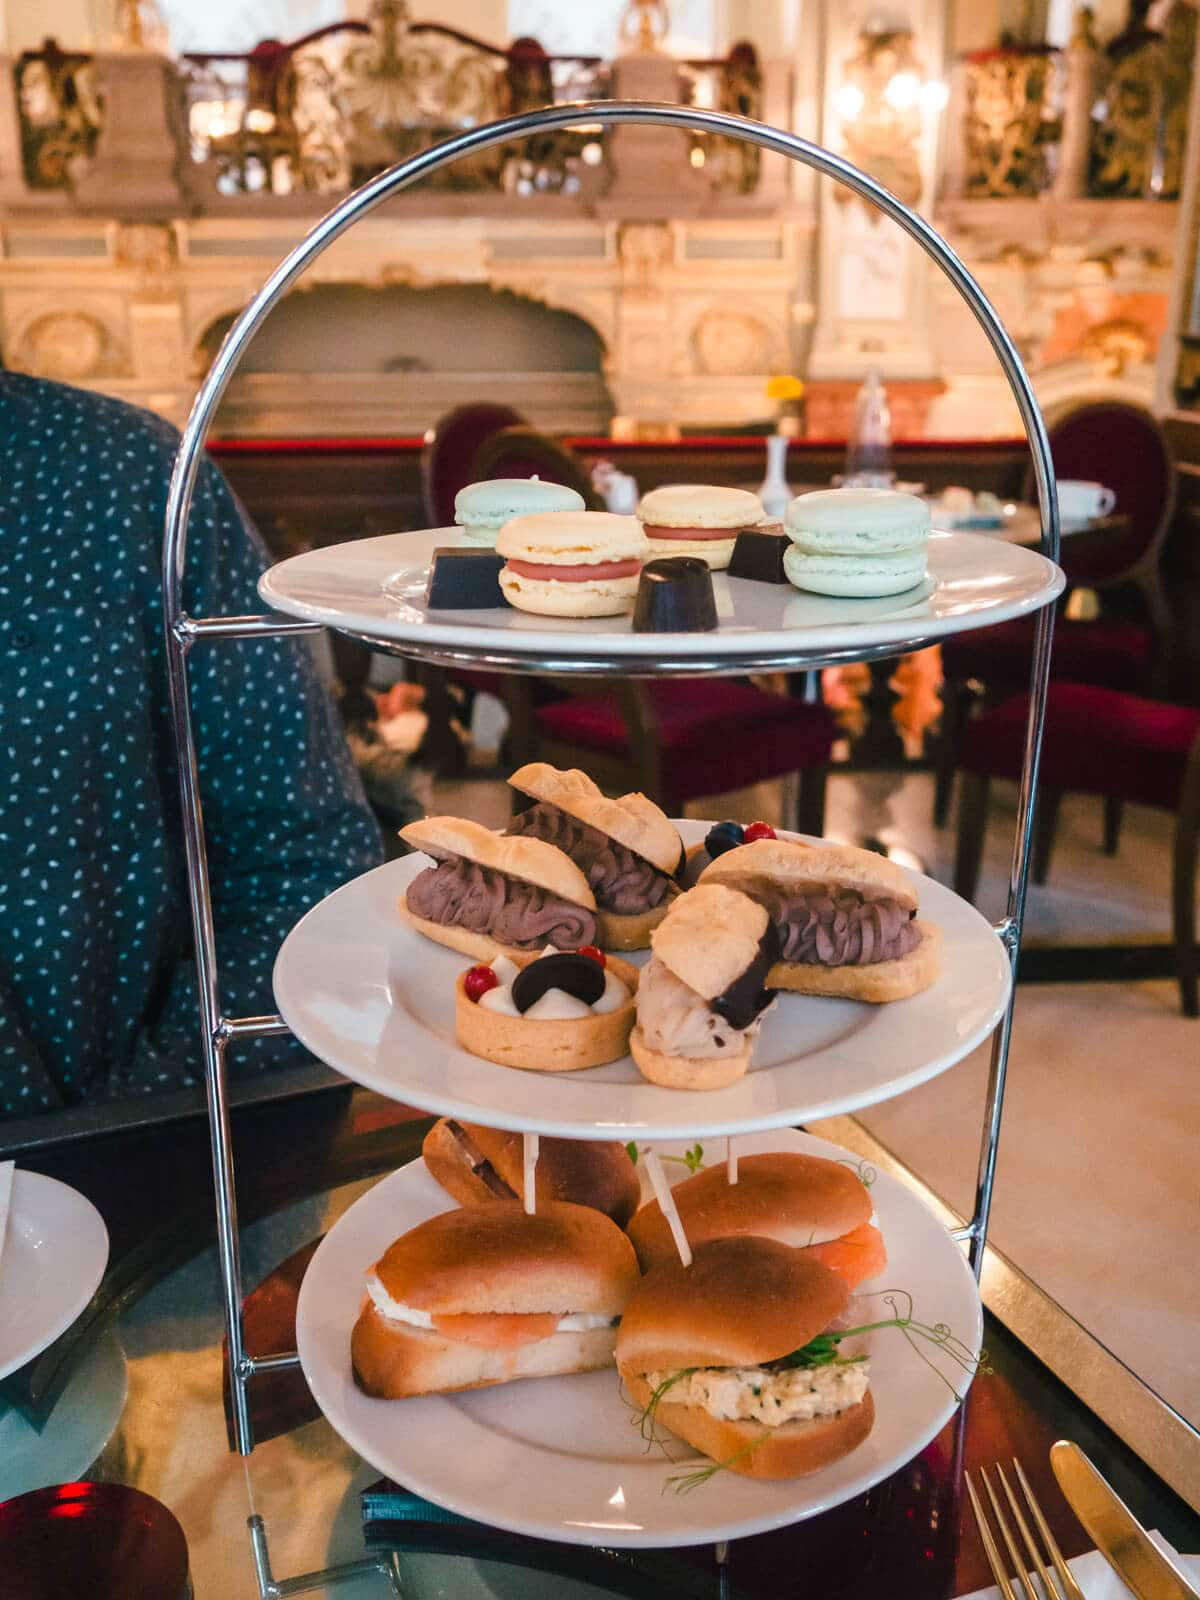 Budapest Instagrammable Places - Afternoon Tea at New York Cafe